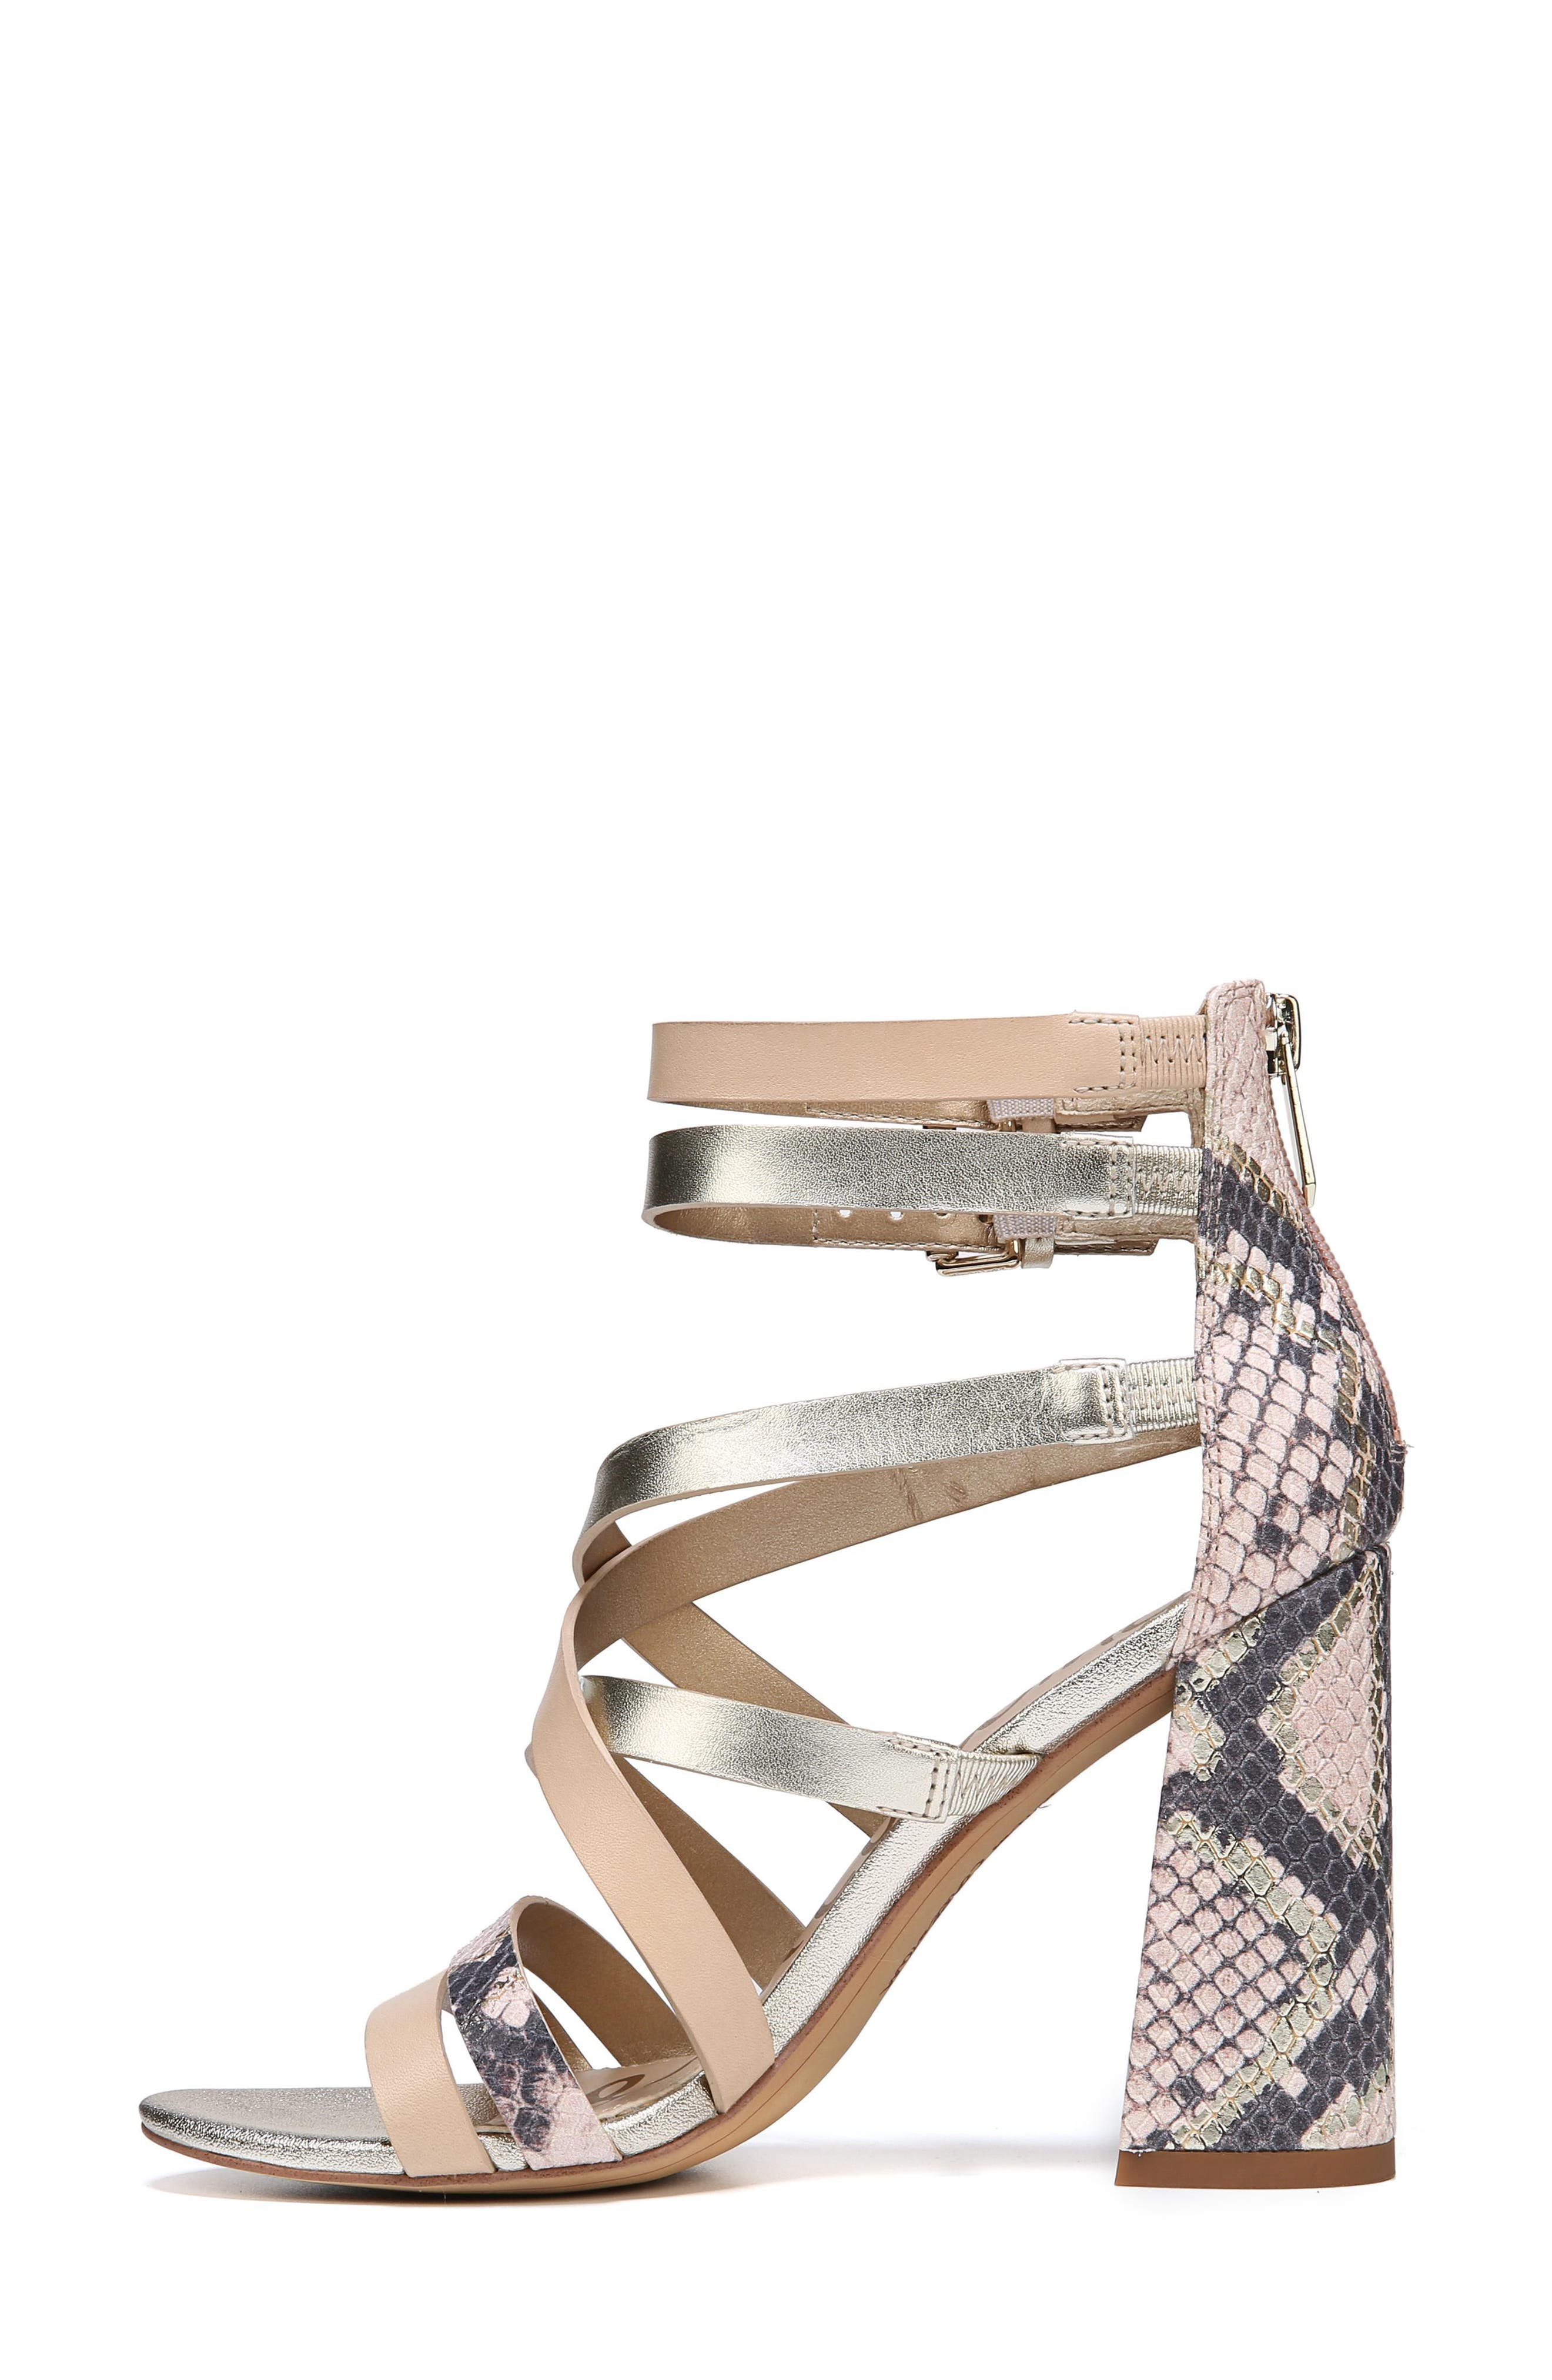 Yema Block Heel Sandal,                             Alternate thumbnail 8, color,                             NATURAL/ PINK/ JUTE